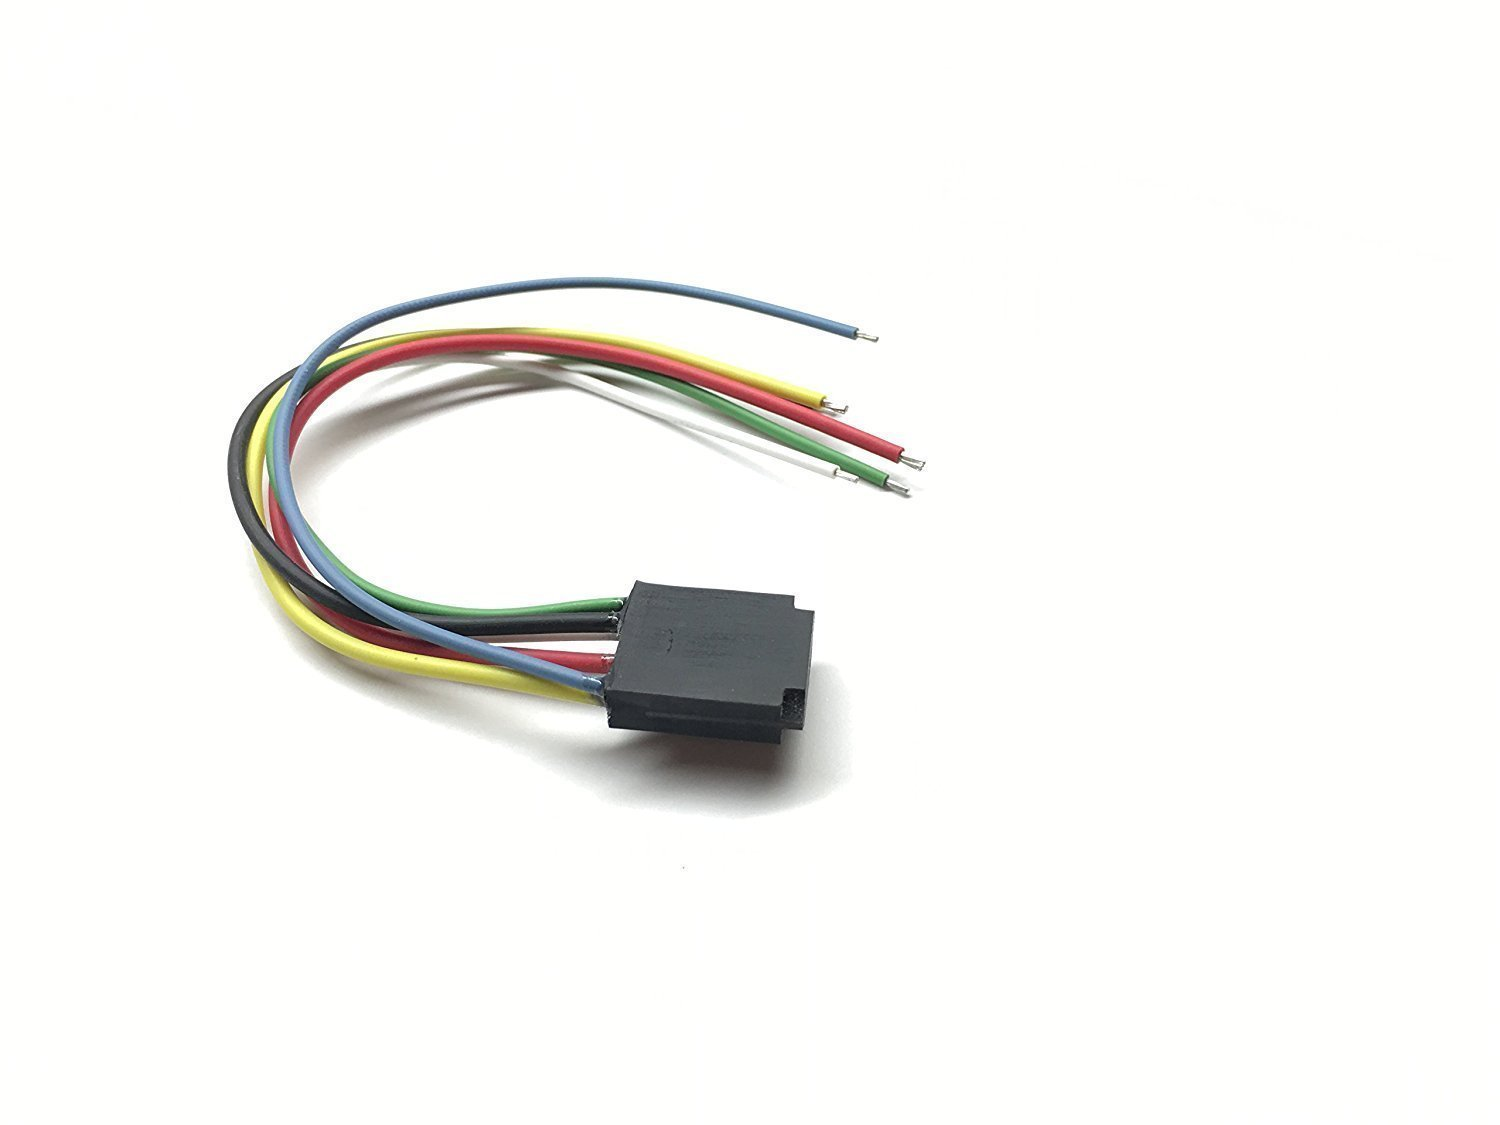 Dome Light Dimmer With Delay Fits Any Car 20 Sec And Wiring Diagram 85 Chevy Truck 10 Min Timeout Automotive